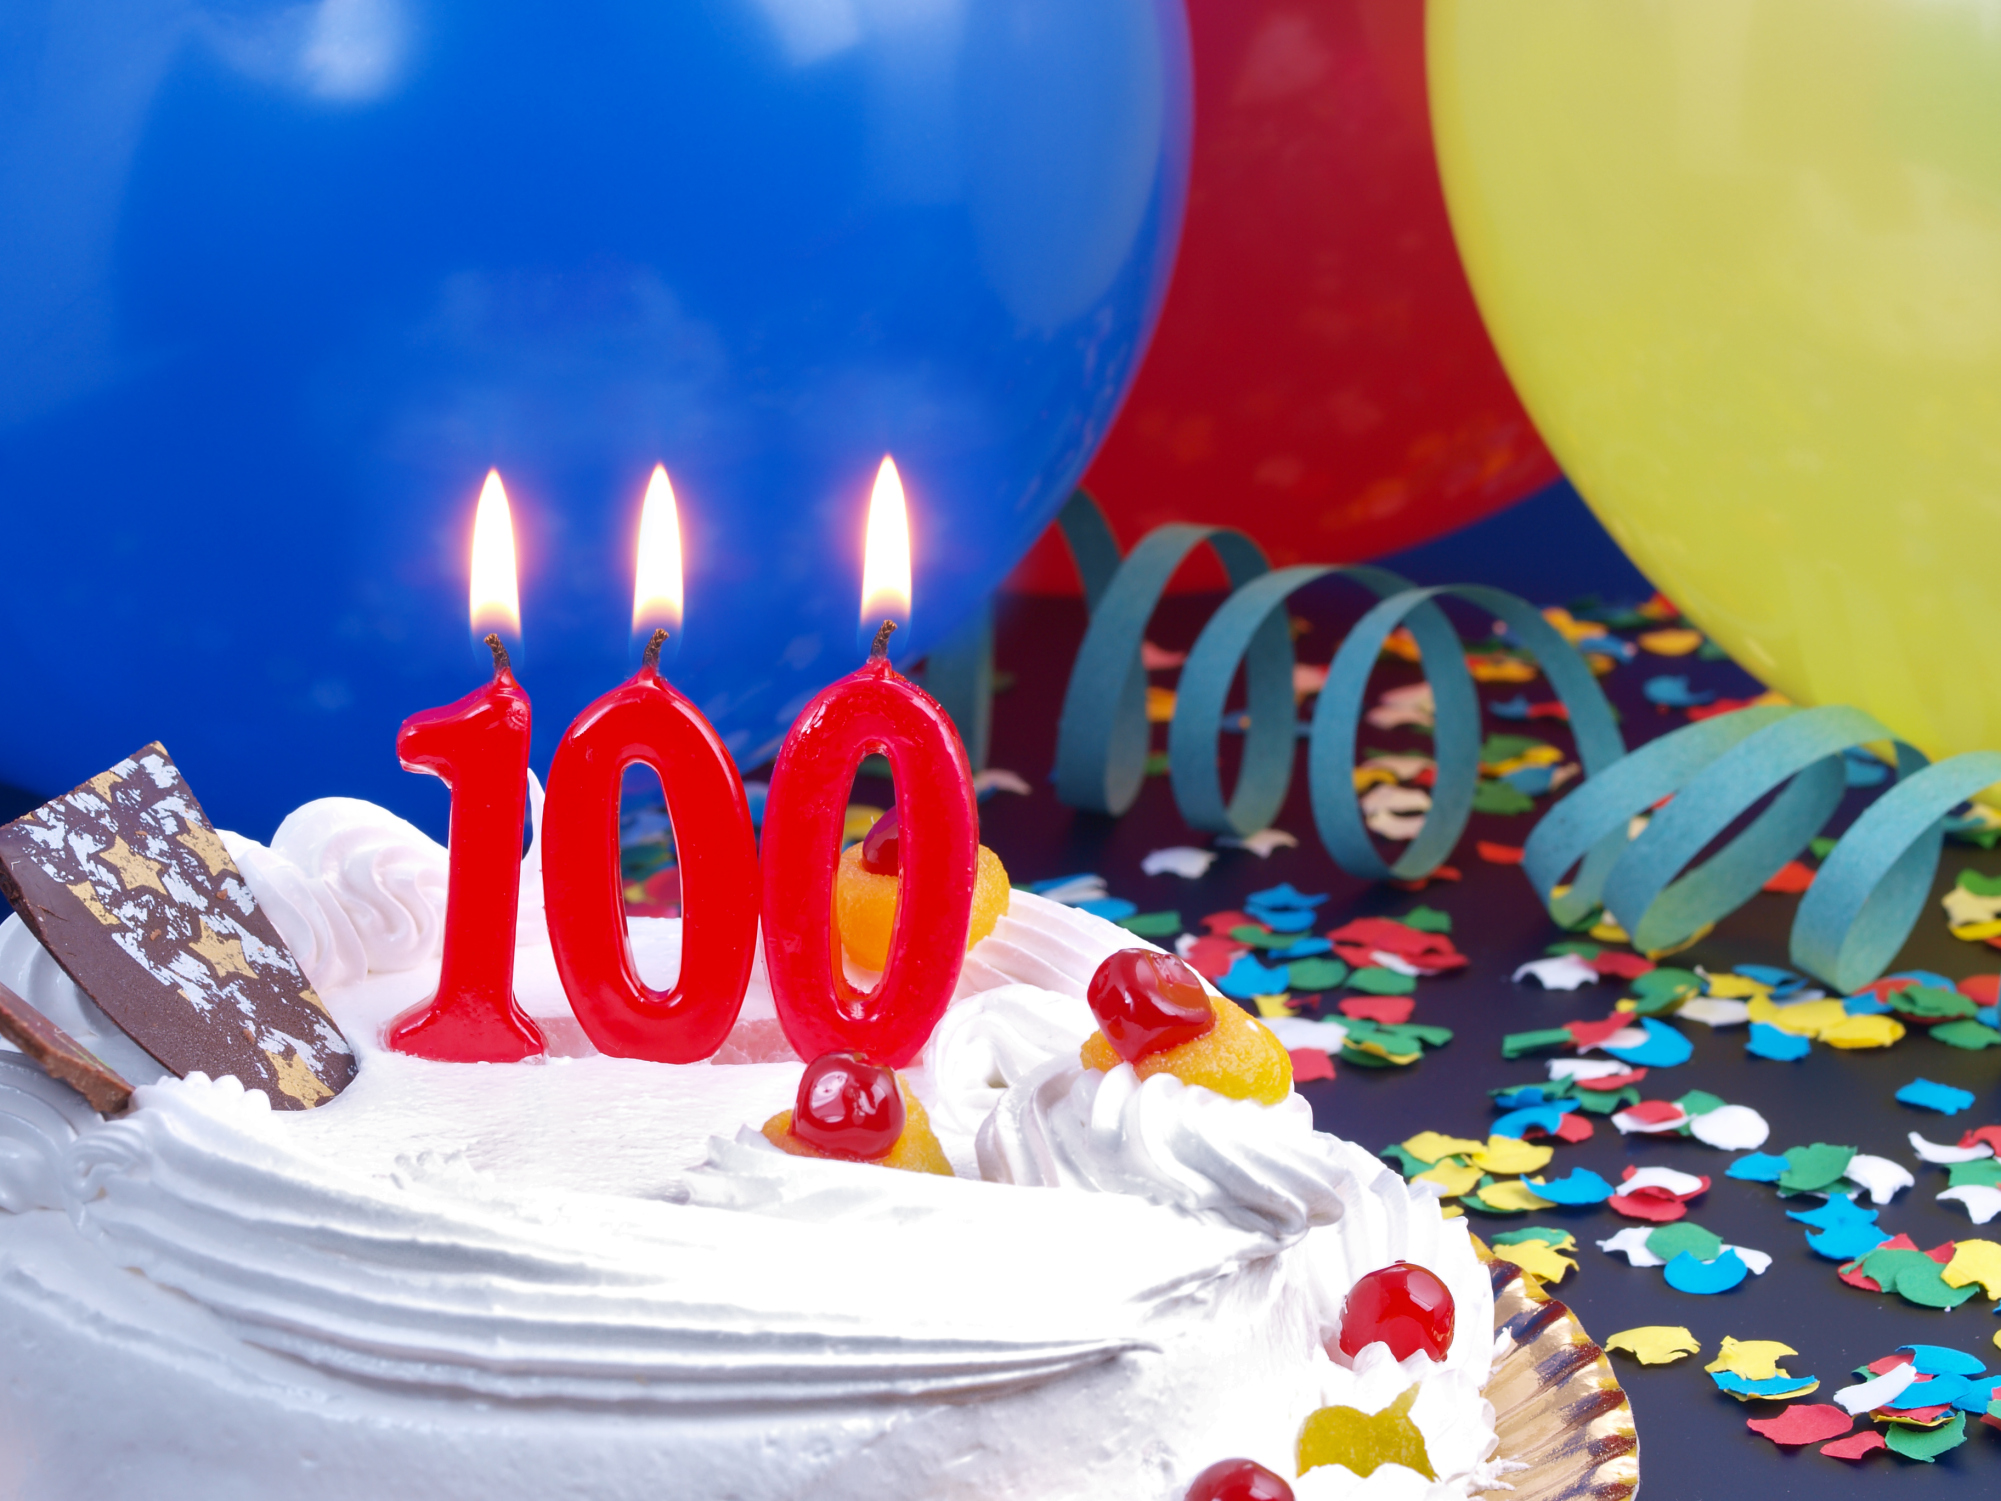 Birthday Ideas For Grandmas Turning 100 Years Old Livestrong